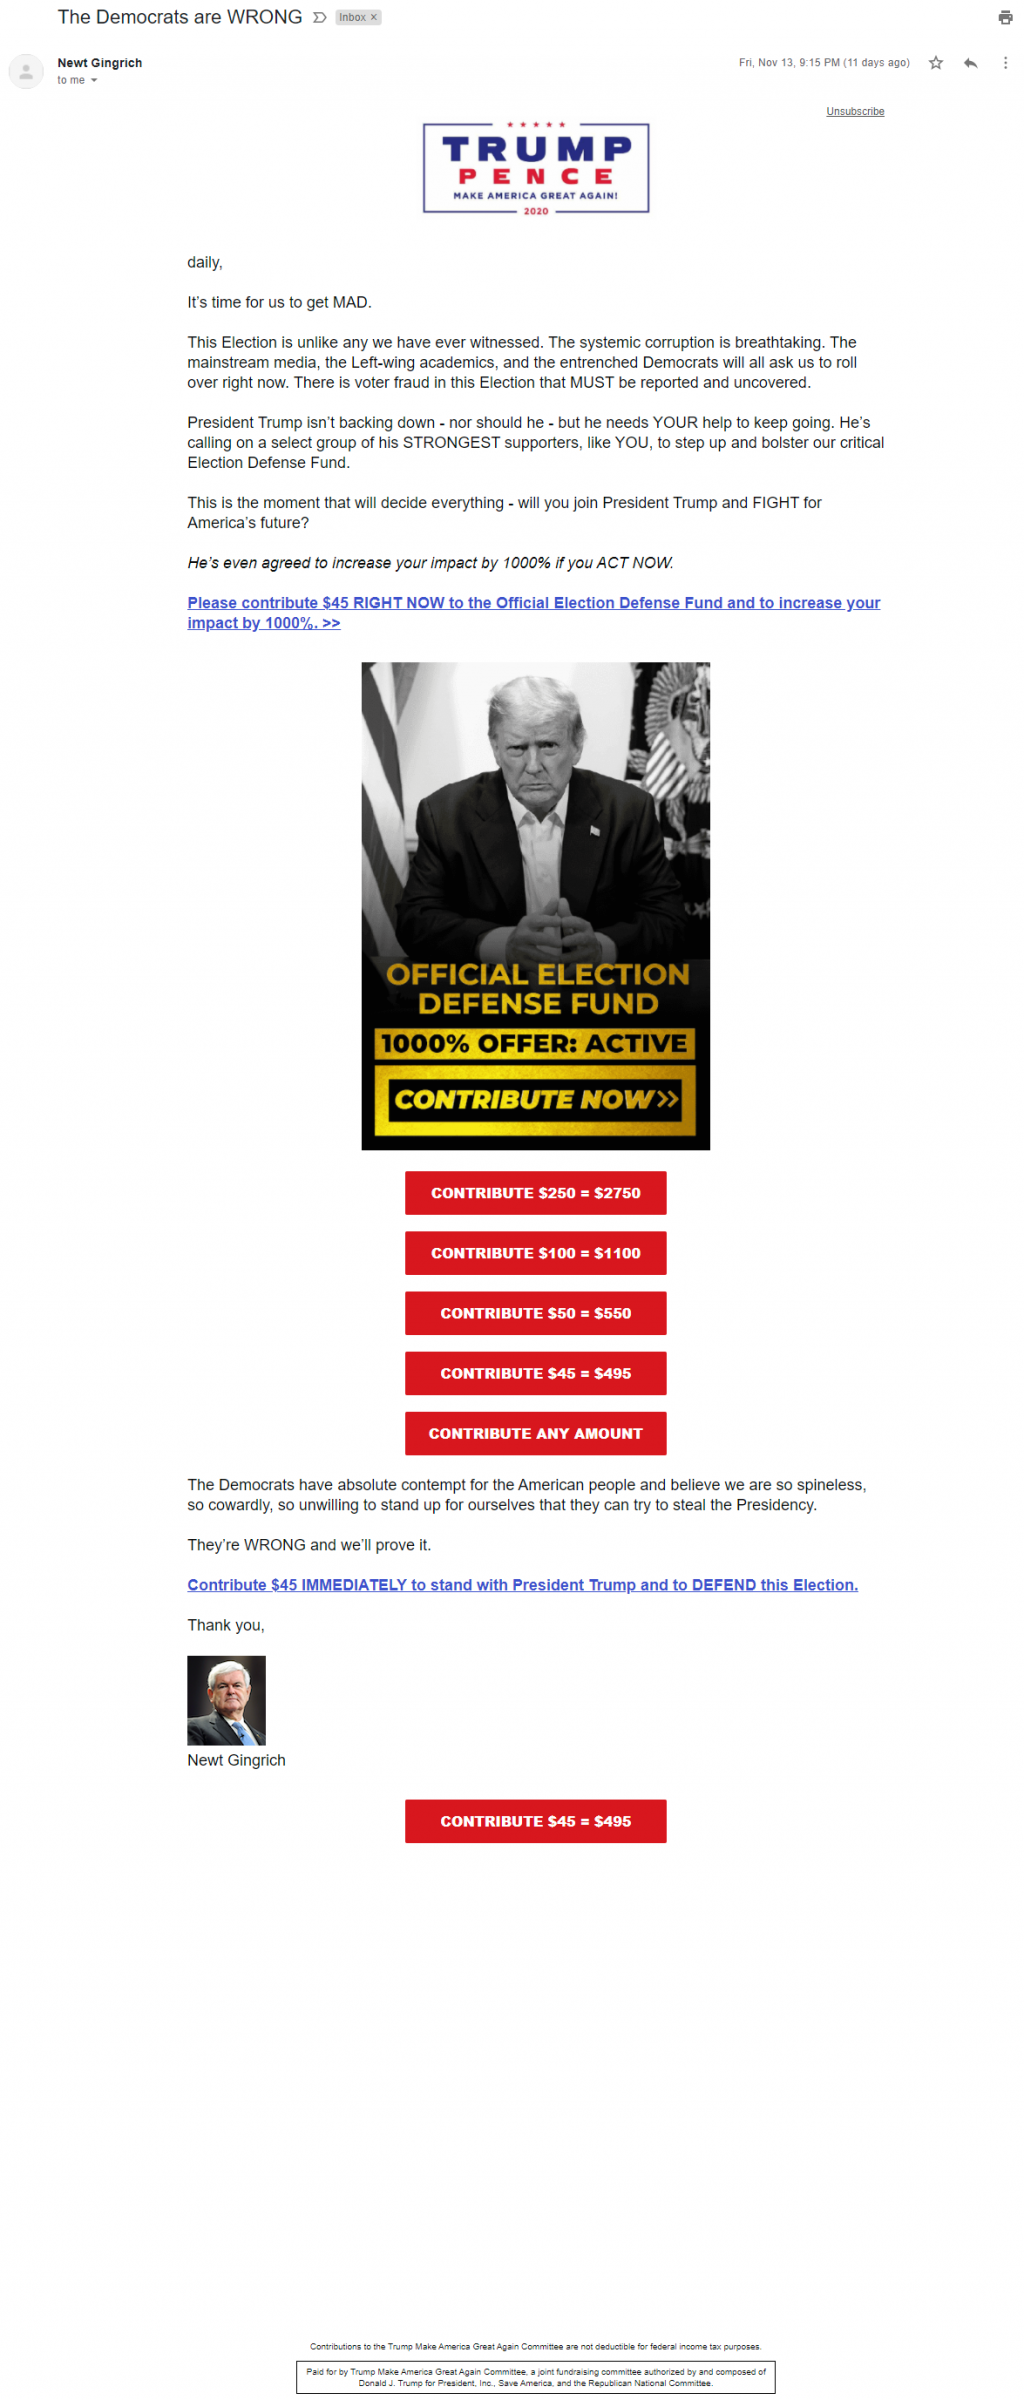 An image of Newt Gingrich's election grifters email